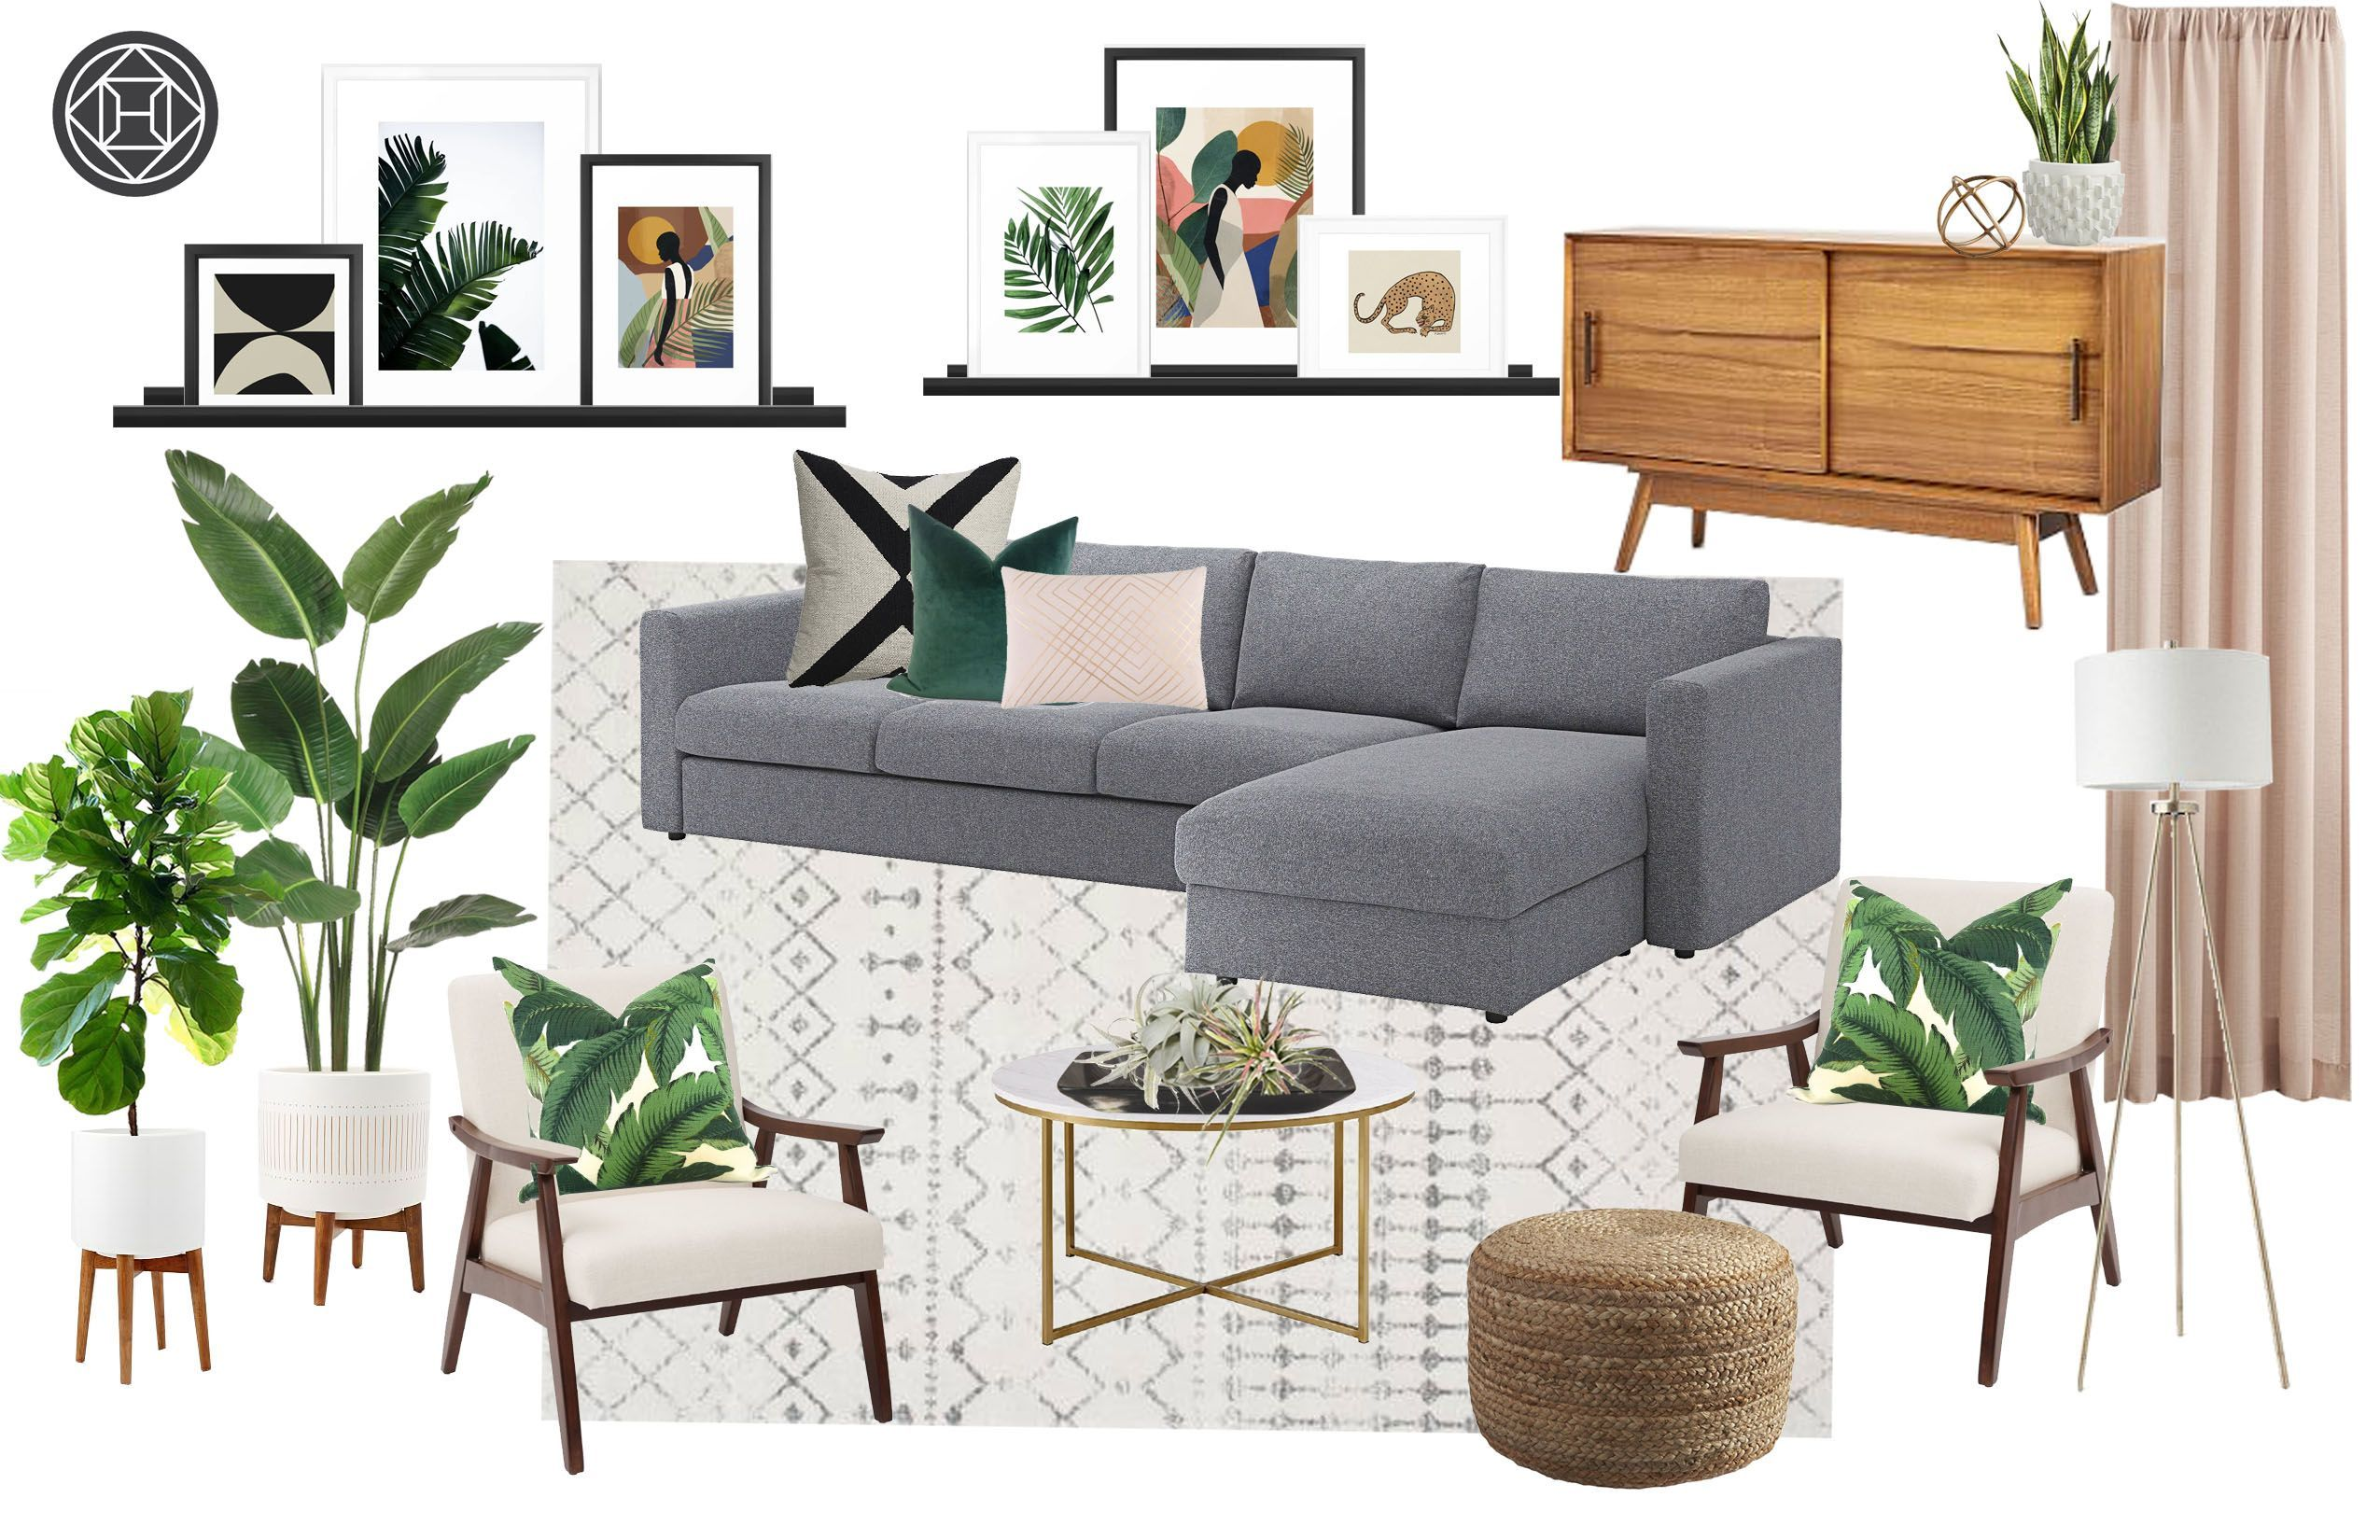 Bohemian, Glam, Midcentury Modern Living Room Design by Havenly Interior Designer Lindsay #havenlylivingroom Check out my living room design by Havenly! #havenlylivingroom